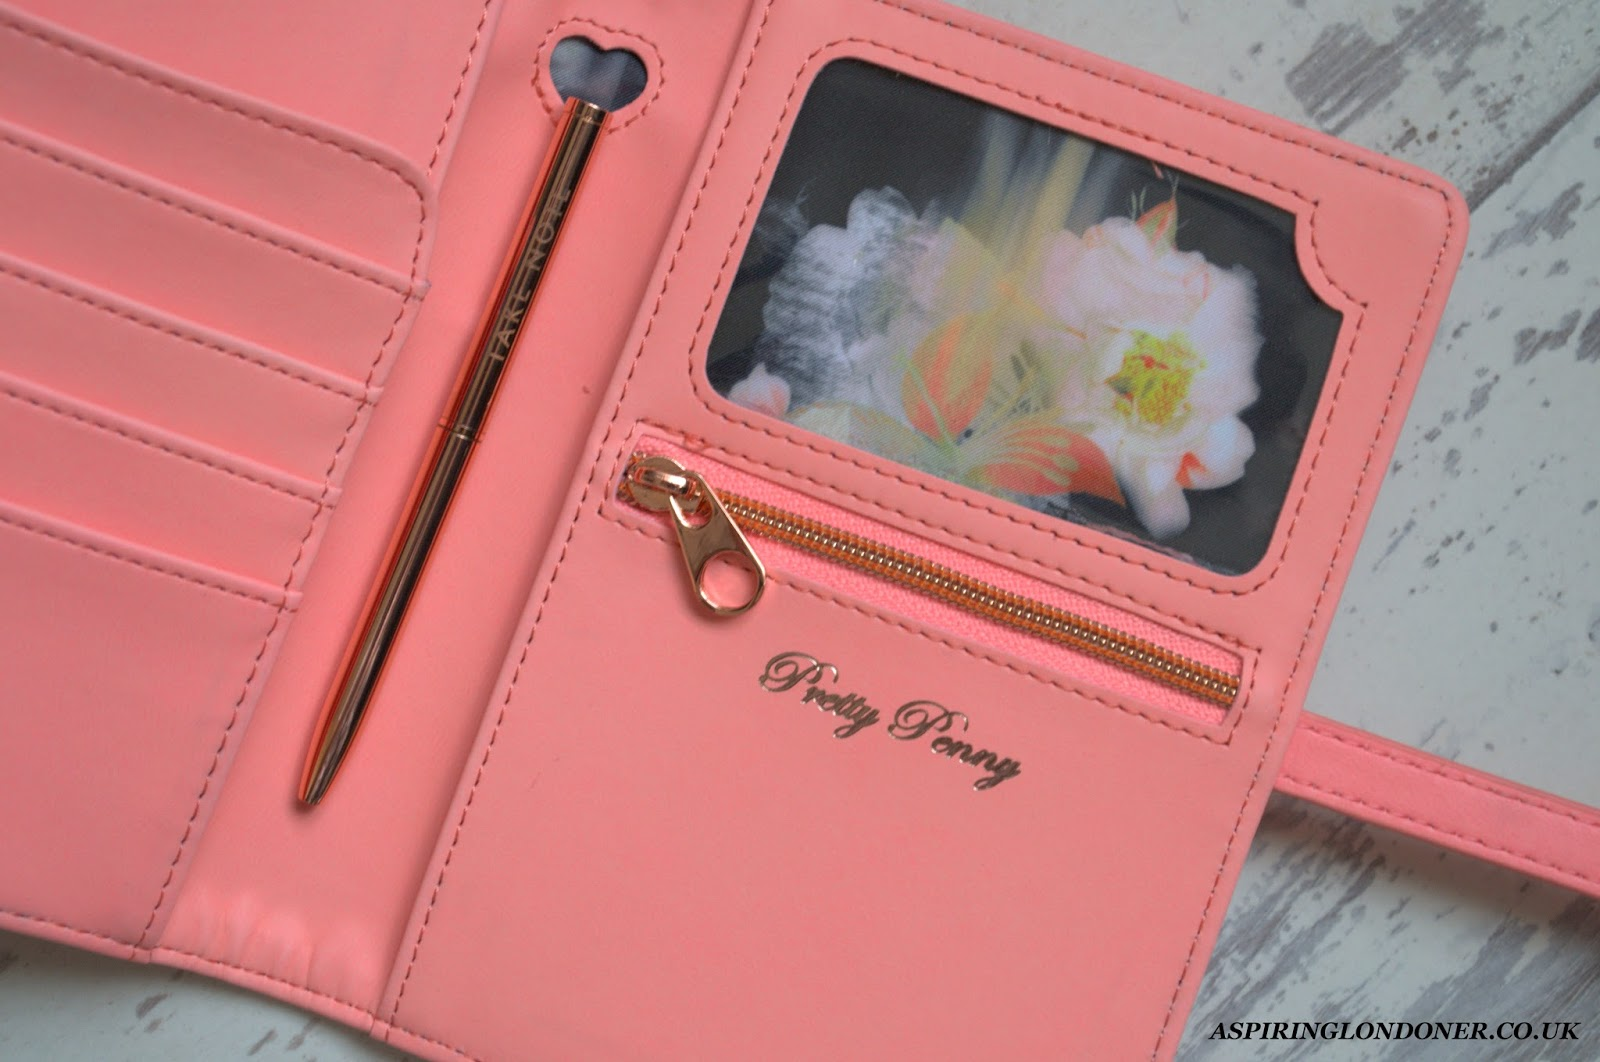 5782823a2 It has a little rose gold pen inside to take notes too